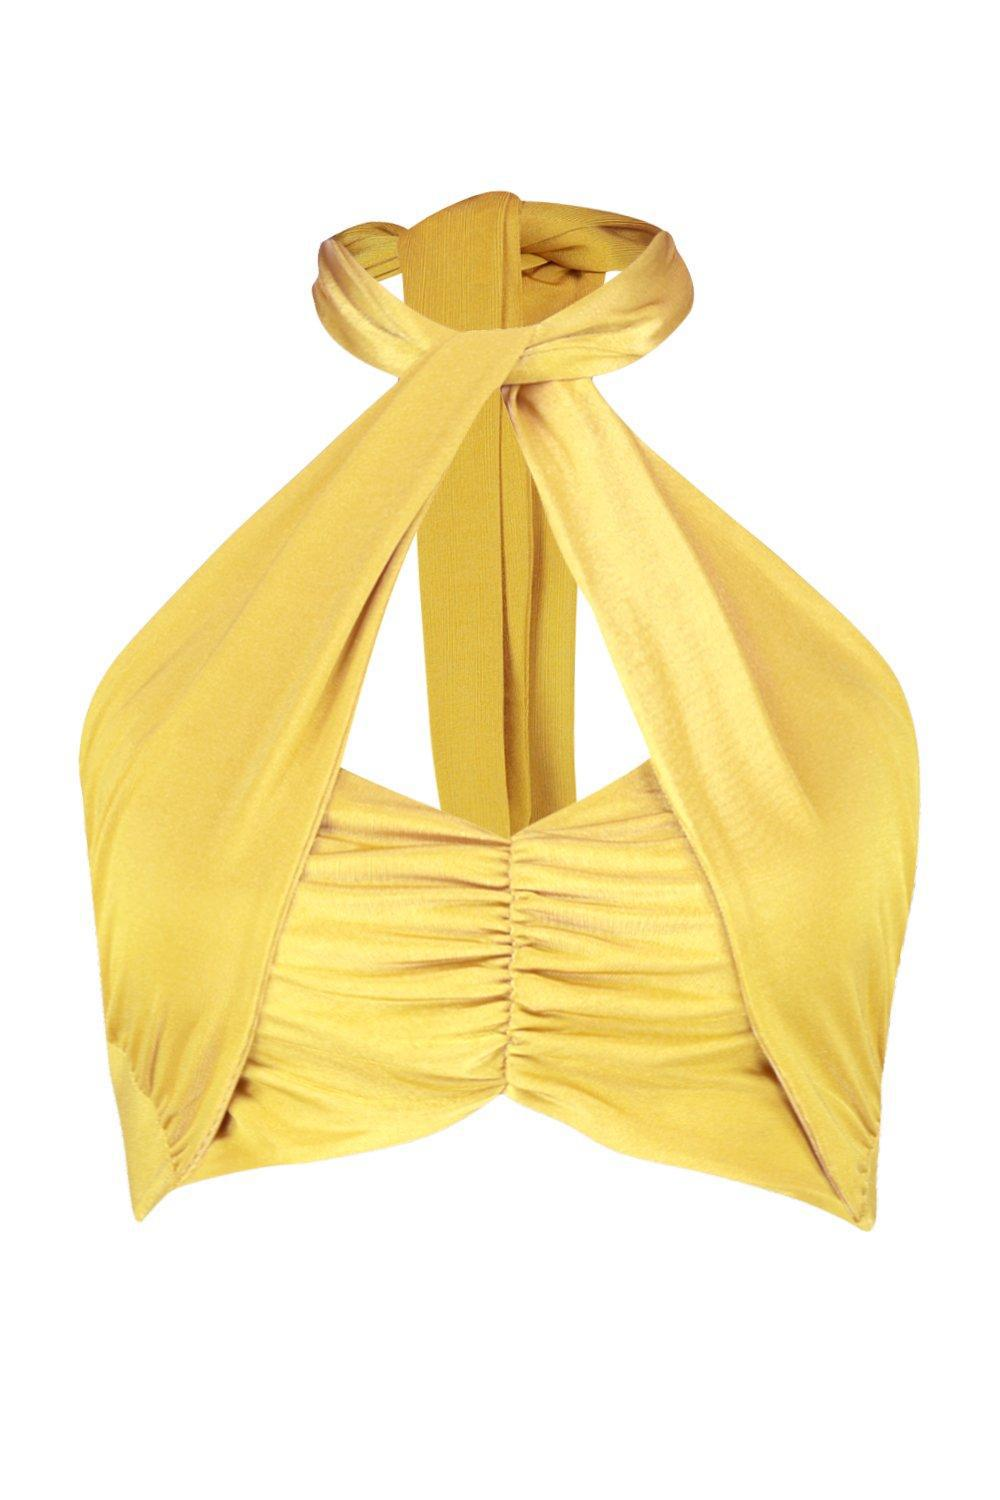 42e8843d0a4f1 Lyst - Boohoo Tie Neck Wrap Crop Bandeau in Yellow